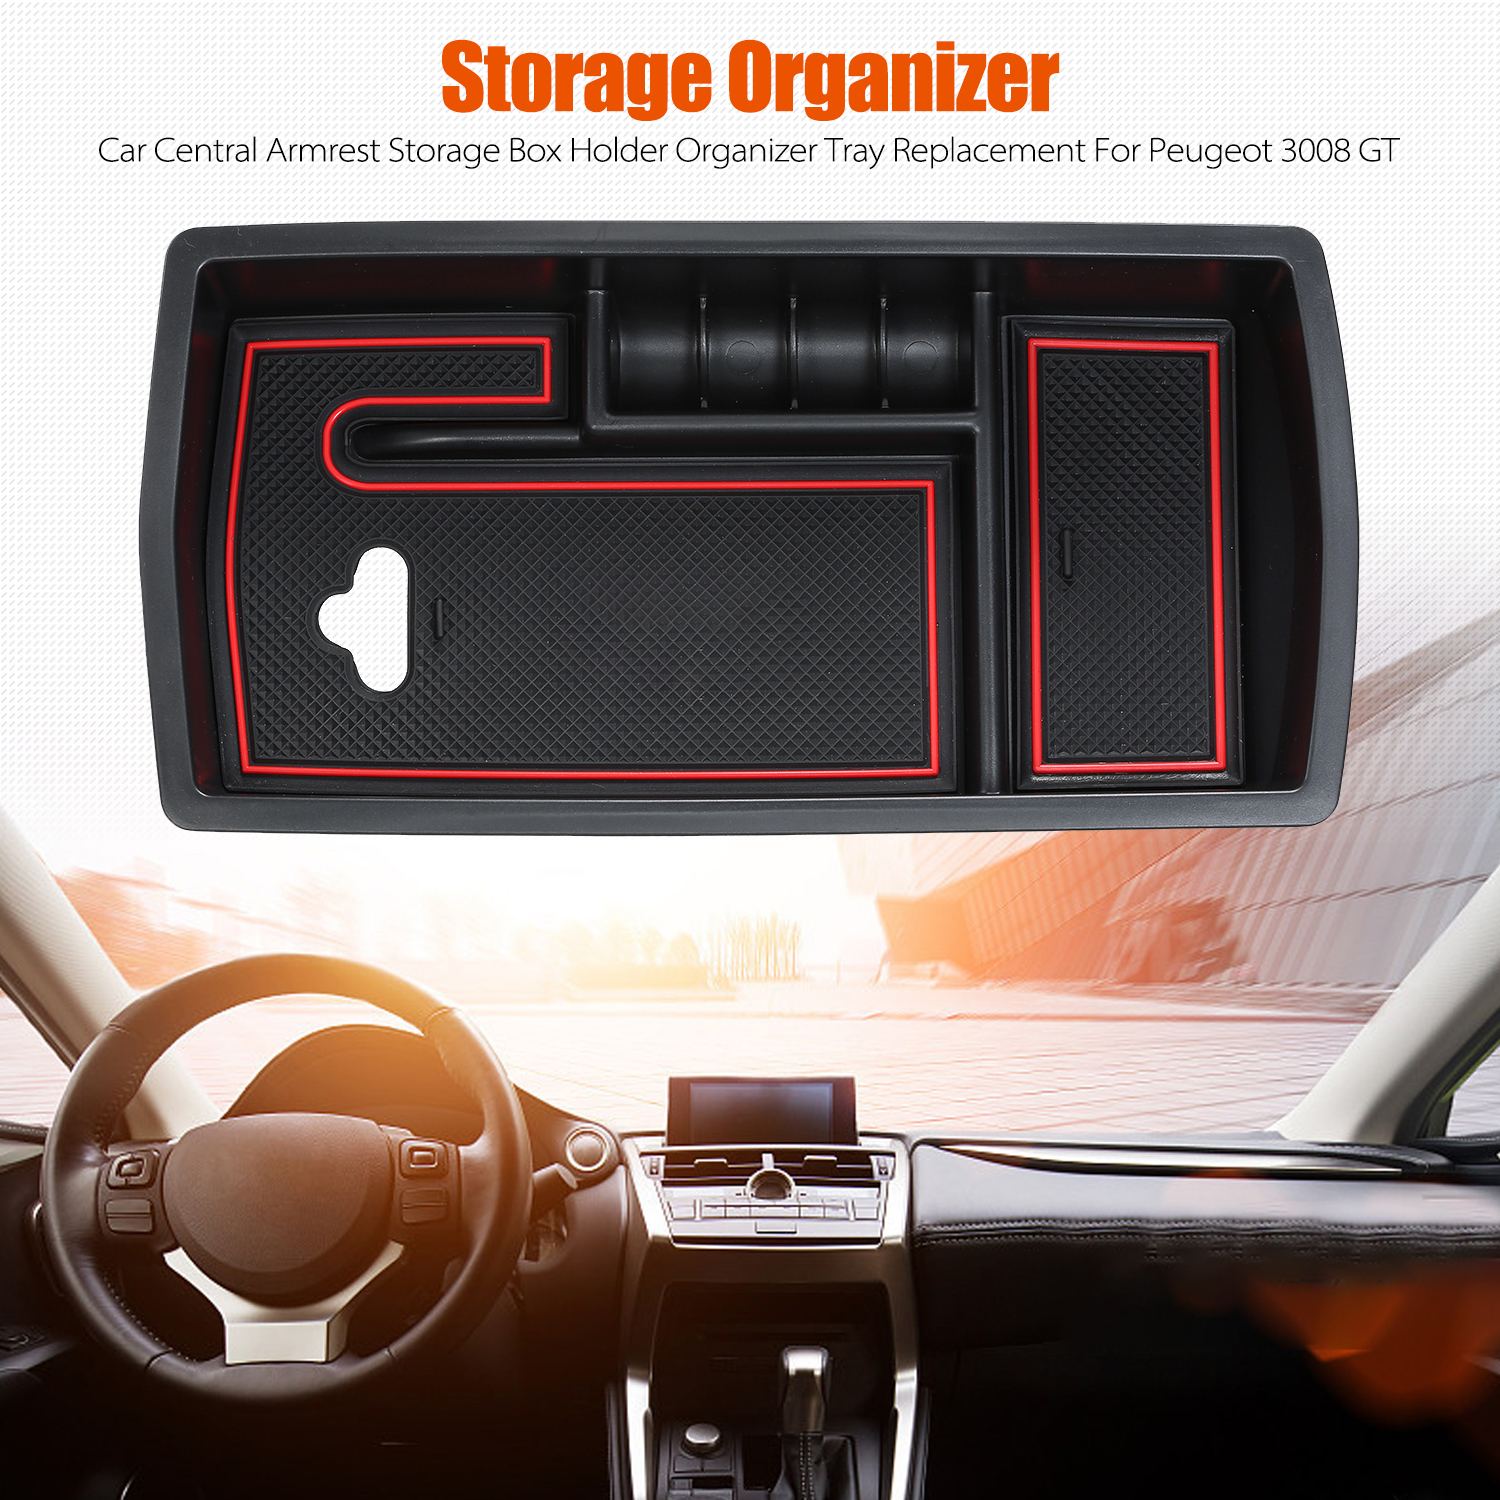 Car Central Armrest Storage Box Replacement For Peugeot 3008 GT 2016-2019 Center Console Organizer Storage Box Holder Organizer